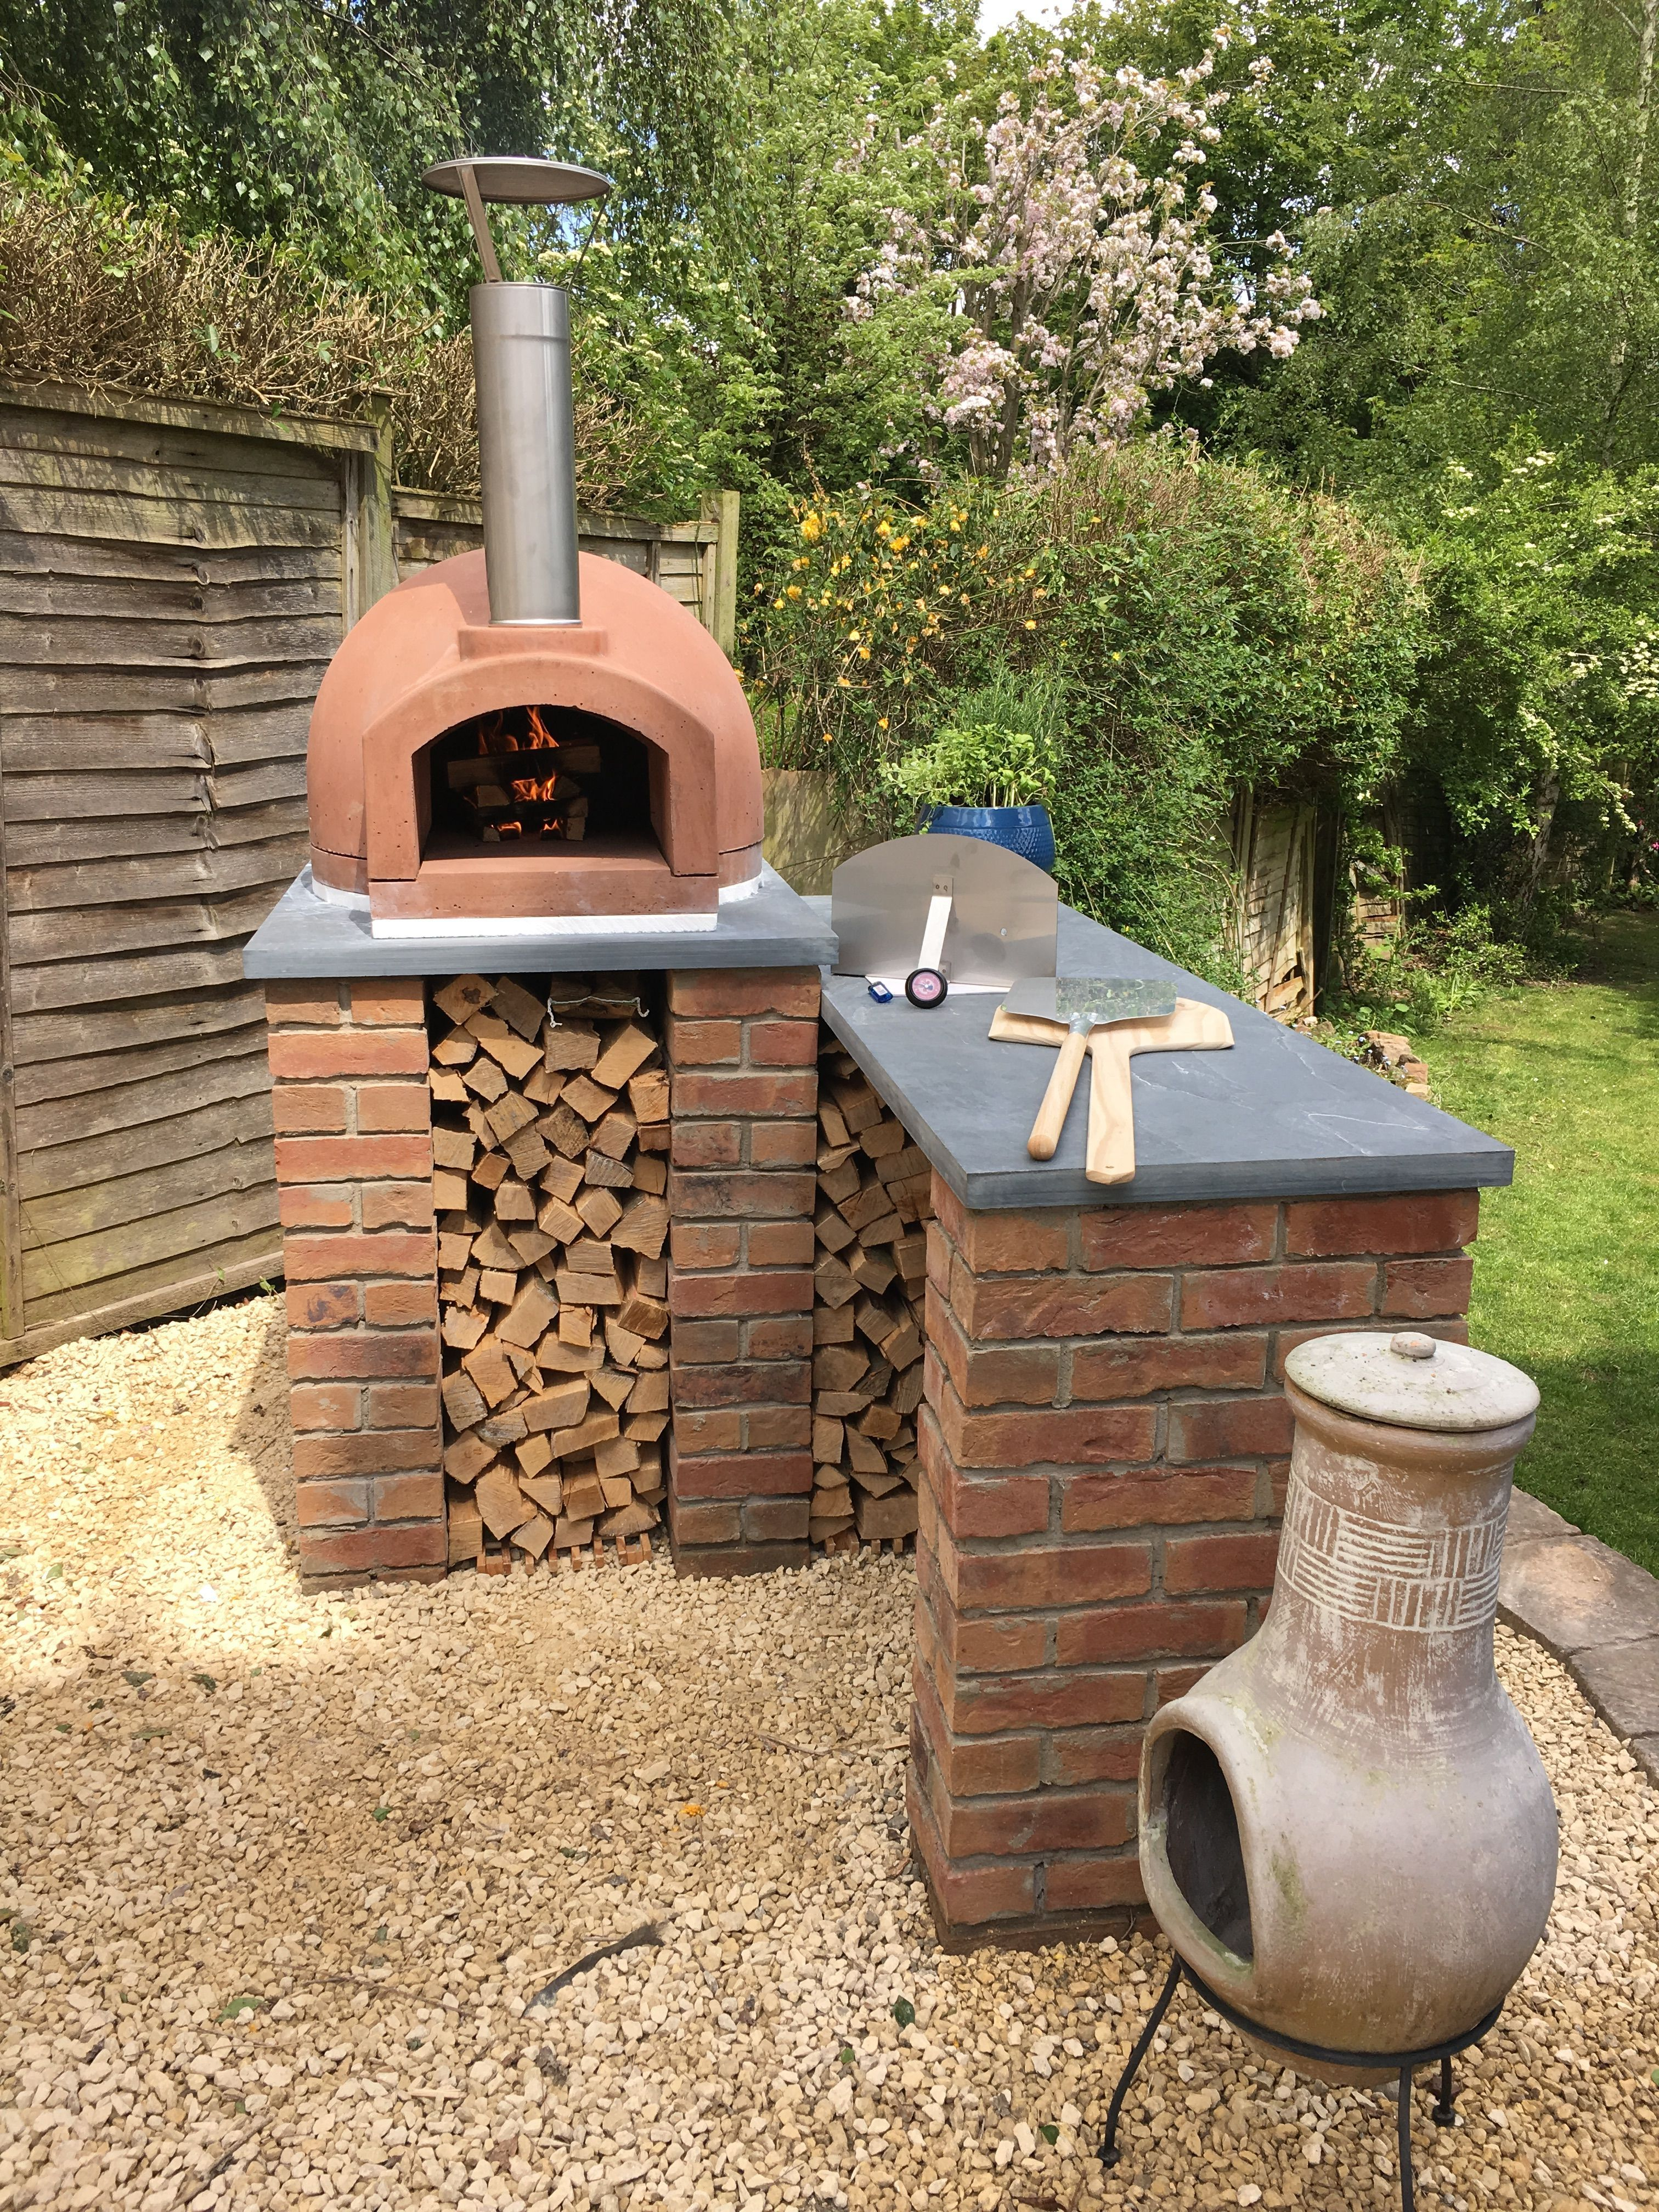 Pin By Caro Mian On Home Remodeling Hints Diy Pizza Oven Pizza Oven Outdoor Diy Pizza Oven Backyard diy pizza oven